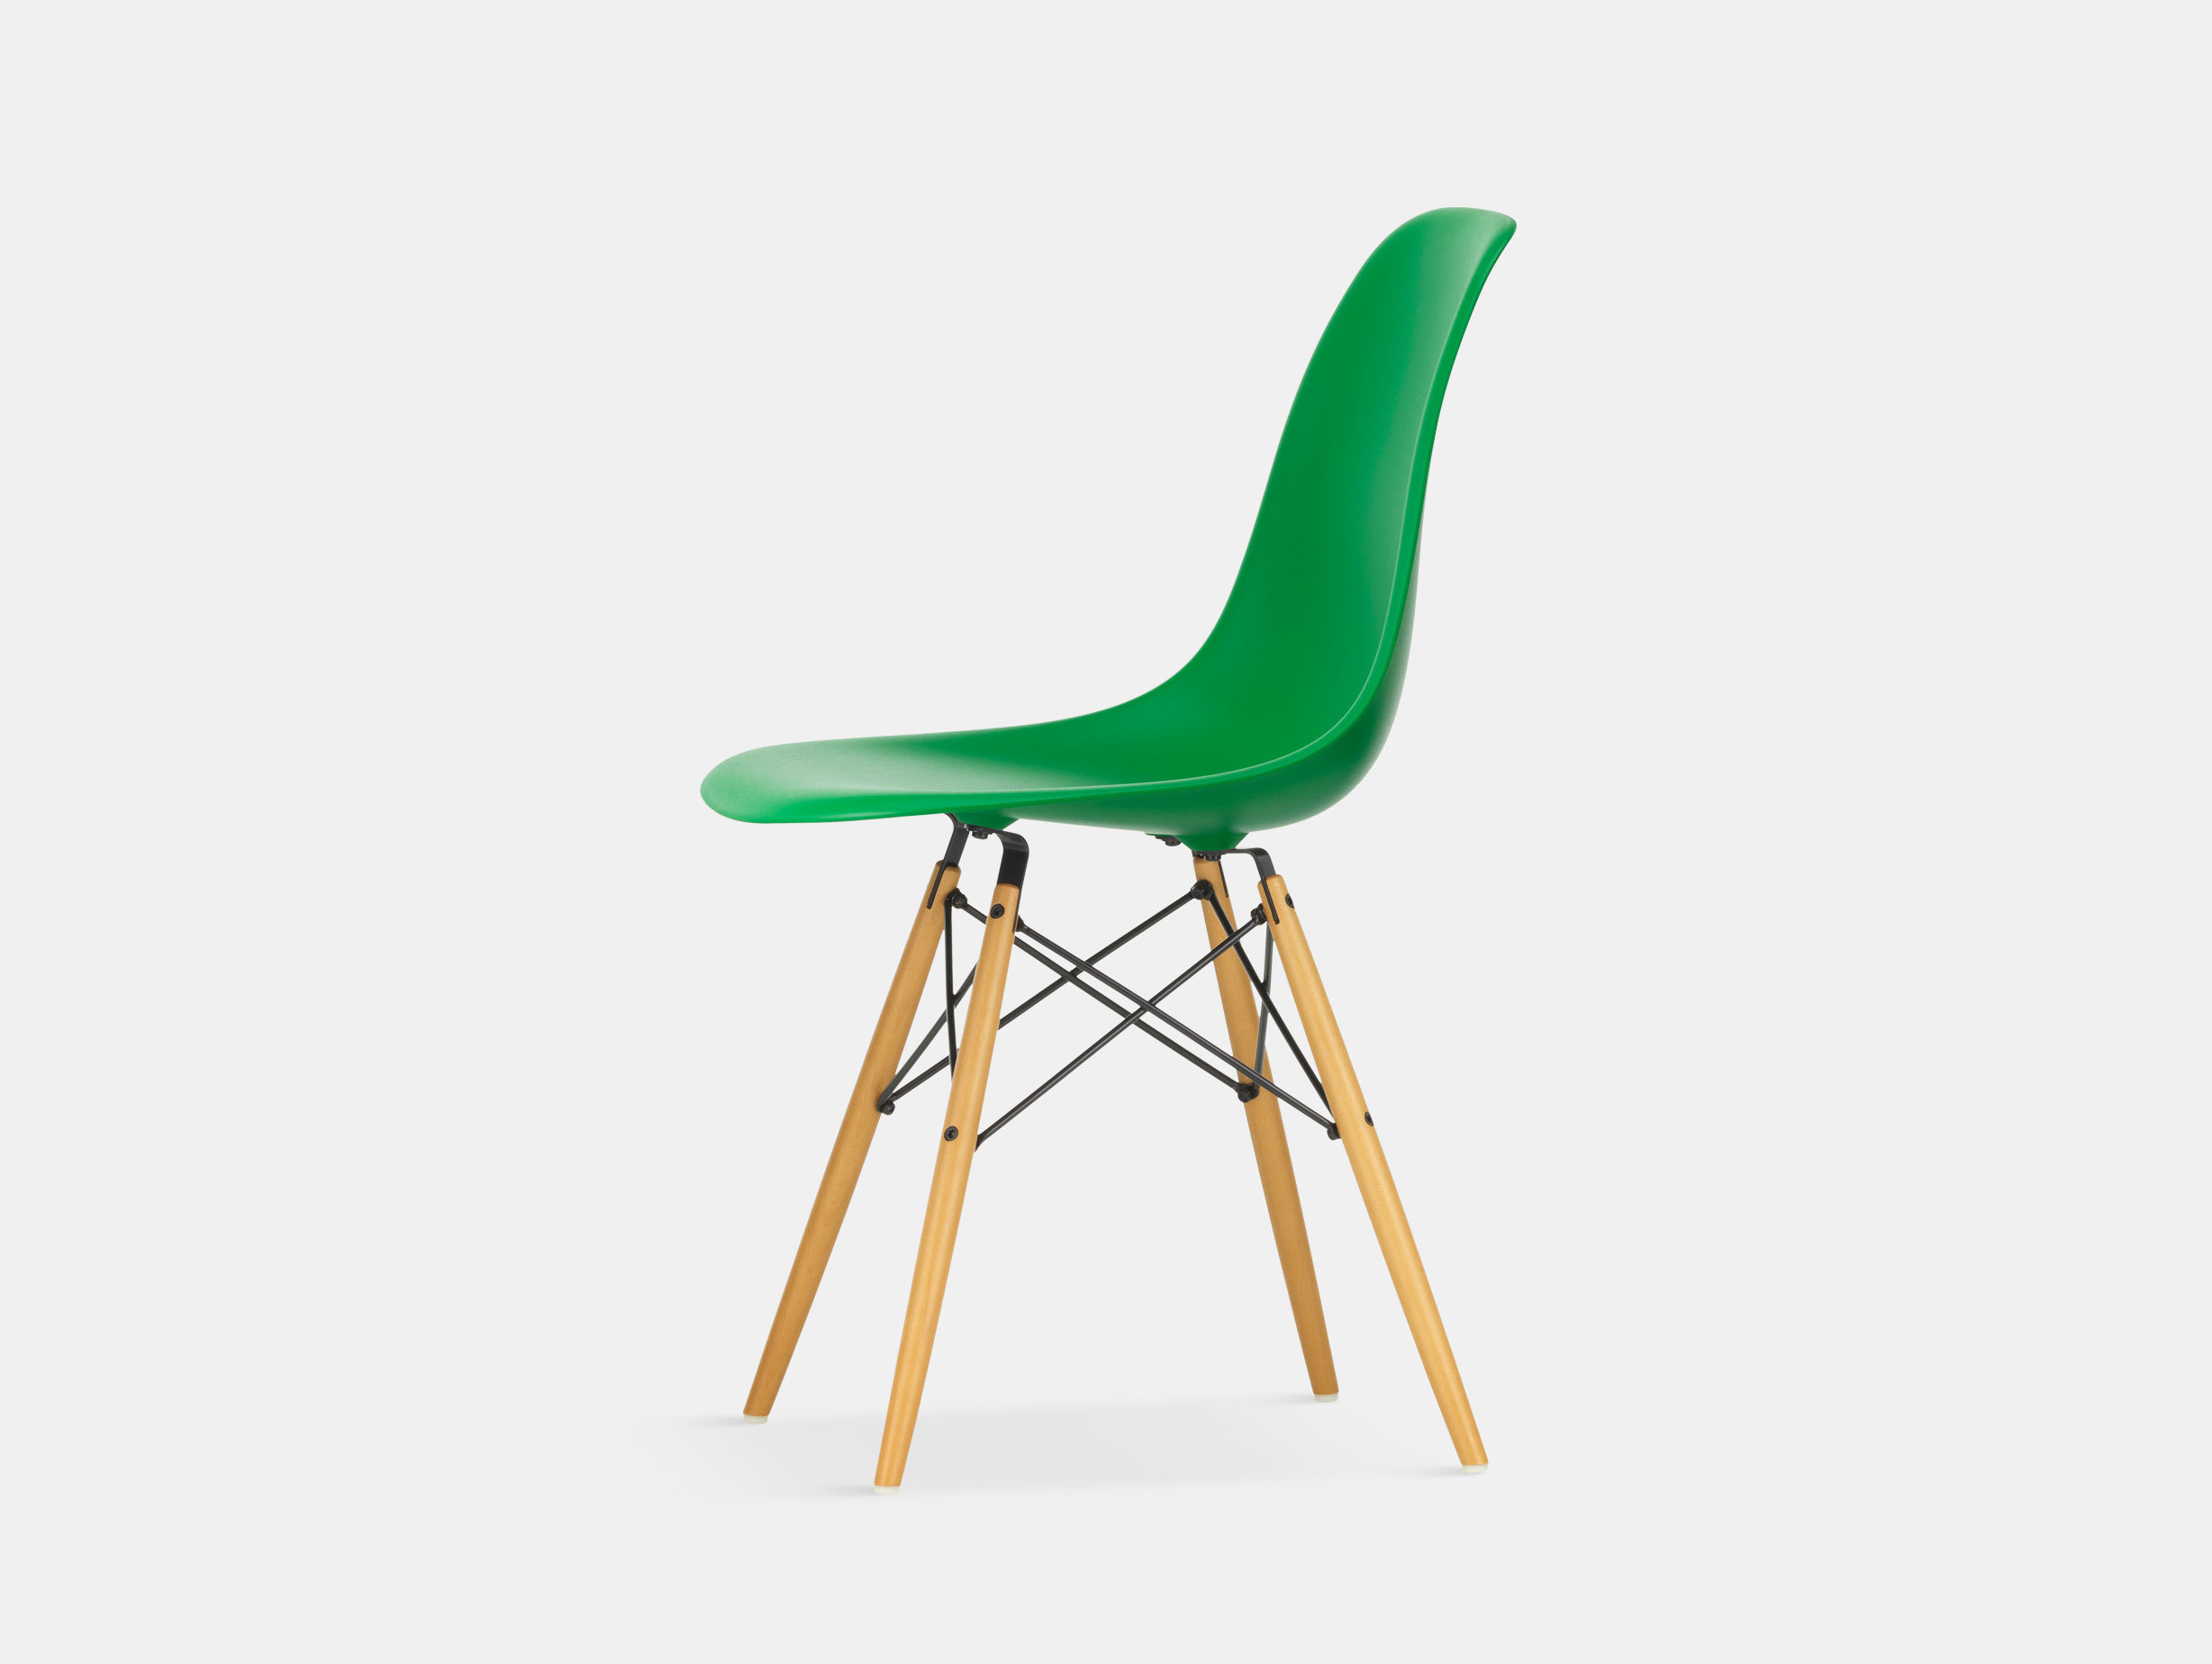 Vitra Eames DSW Plastic Side Chair green golden maple legs